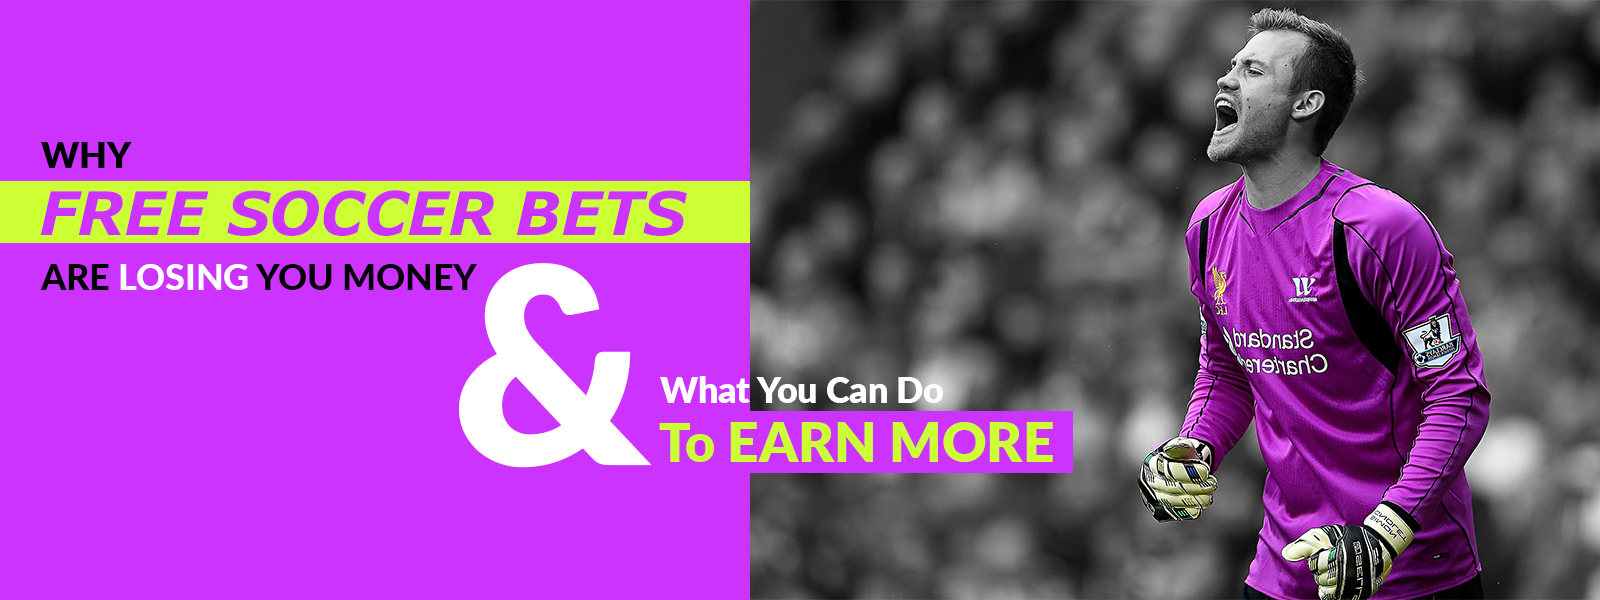 Free Soccer Bets Causing You To Lose More